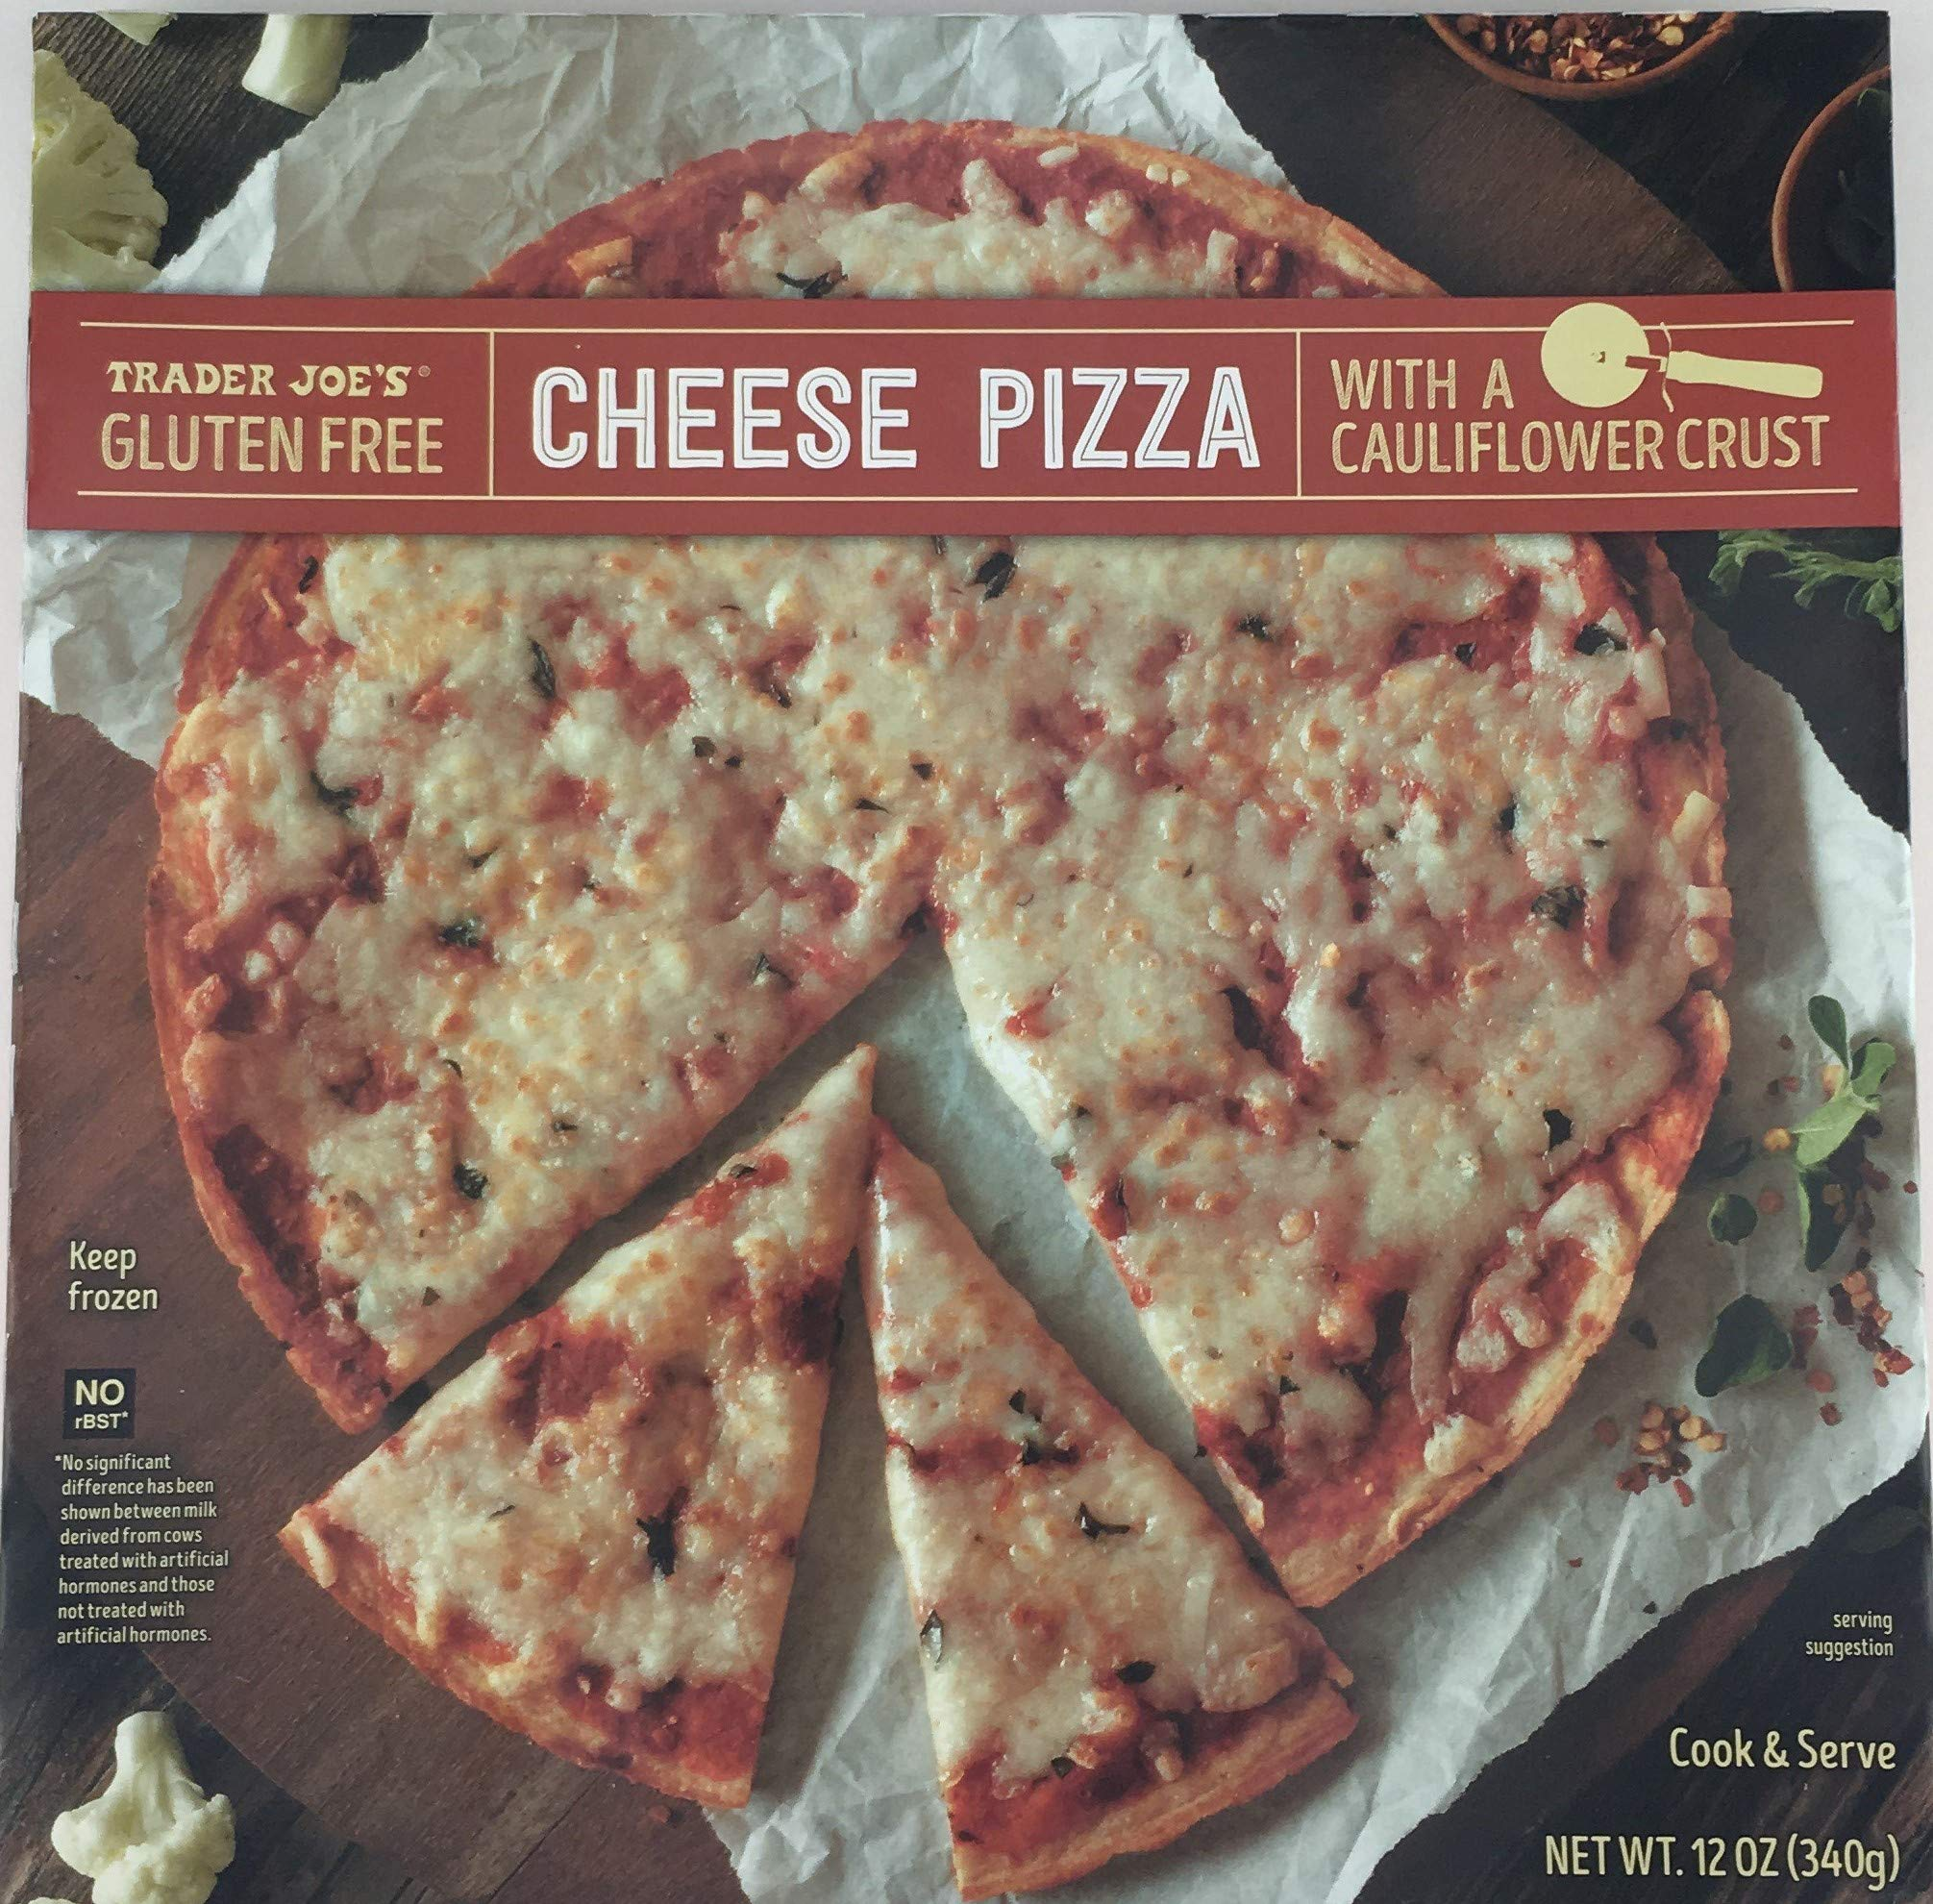 Trader Joe's Gluten Free Cheese Pizza with Cauliflower Crust (4 Pack) by Trader Joe's Grocery (Image #1)